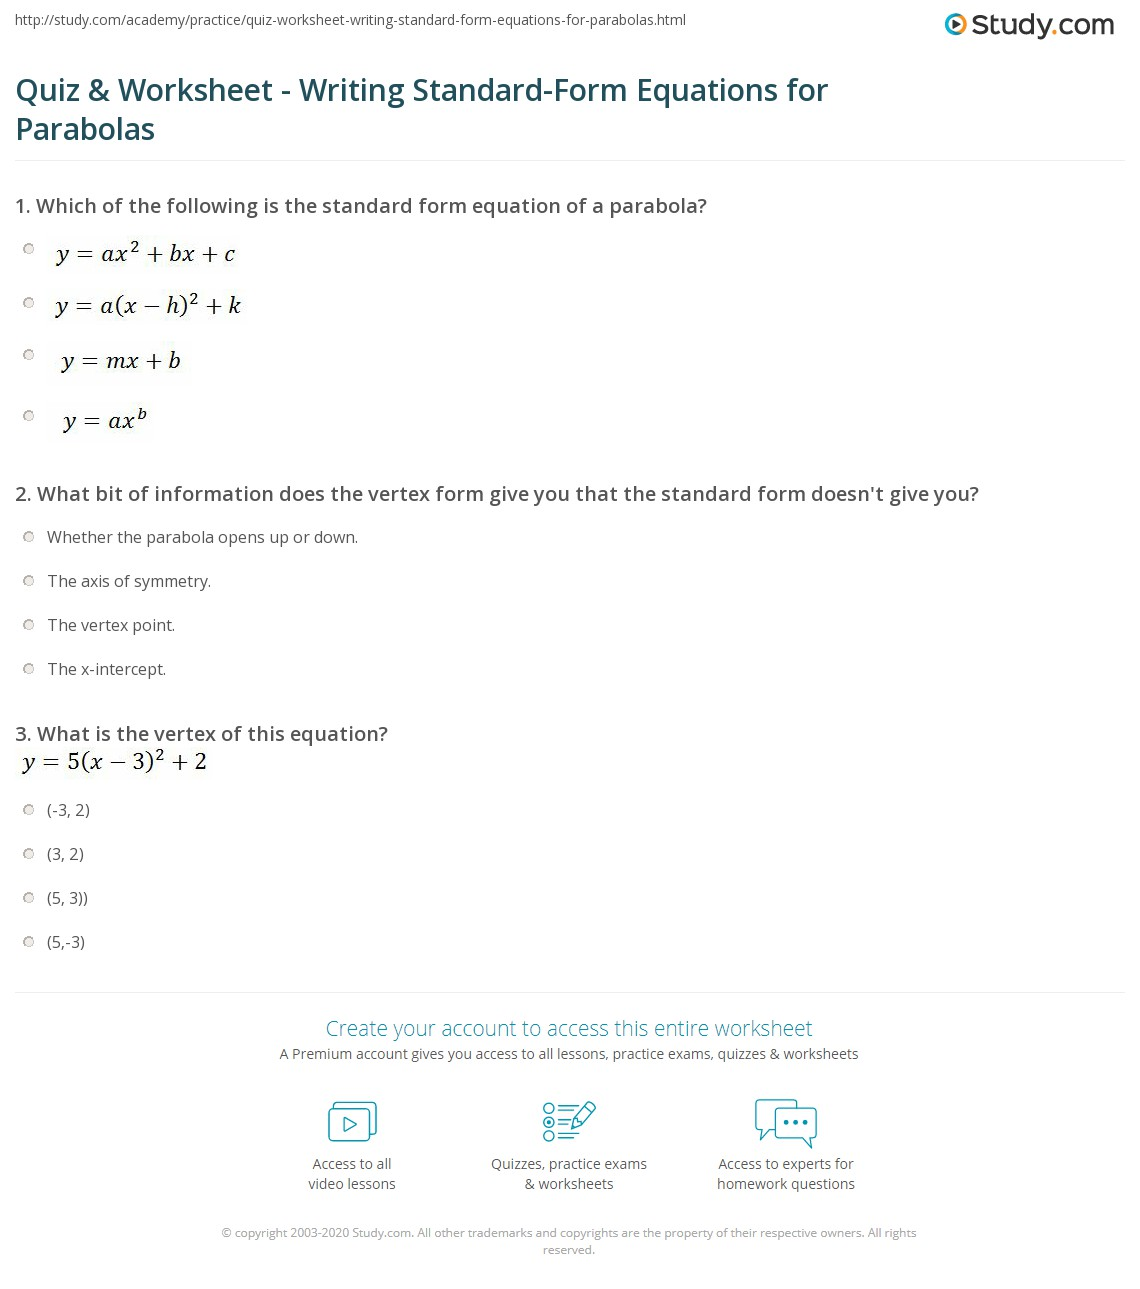 quiz worksheet writing standard form equations for parabolas  print writing standard form equations for parabolas definition explanation worksheet